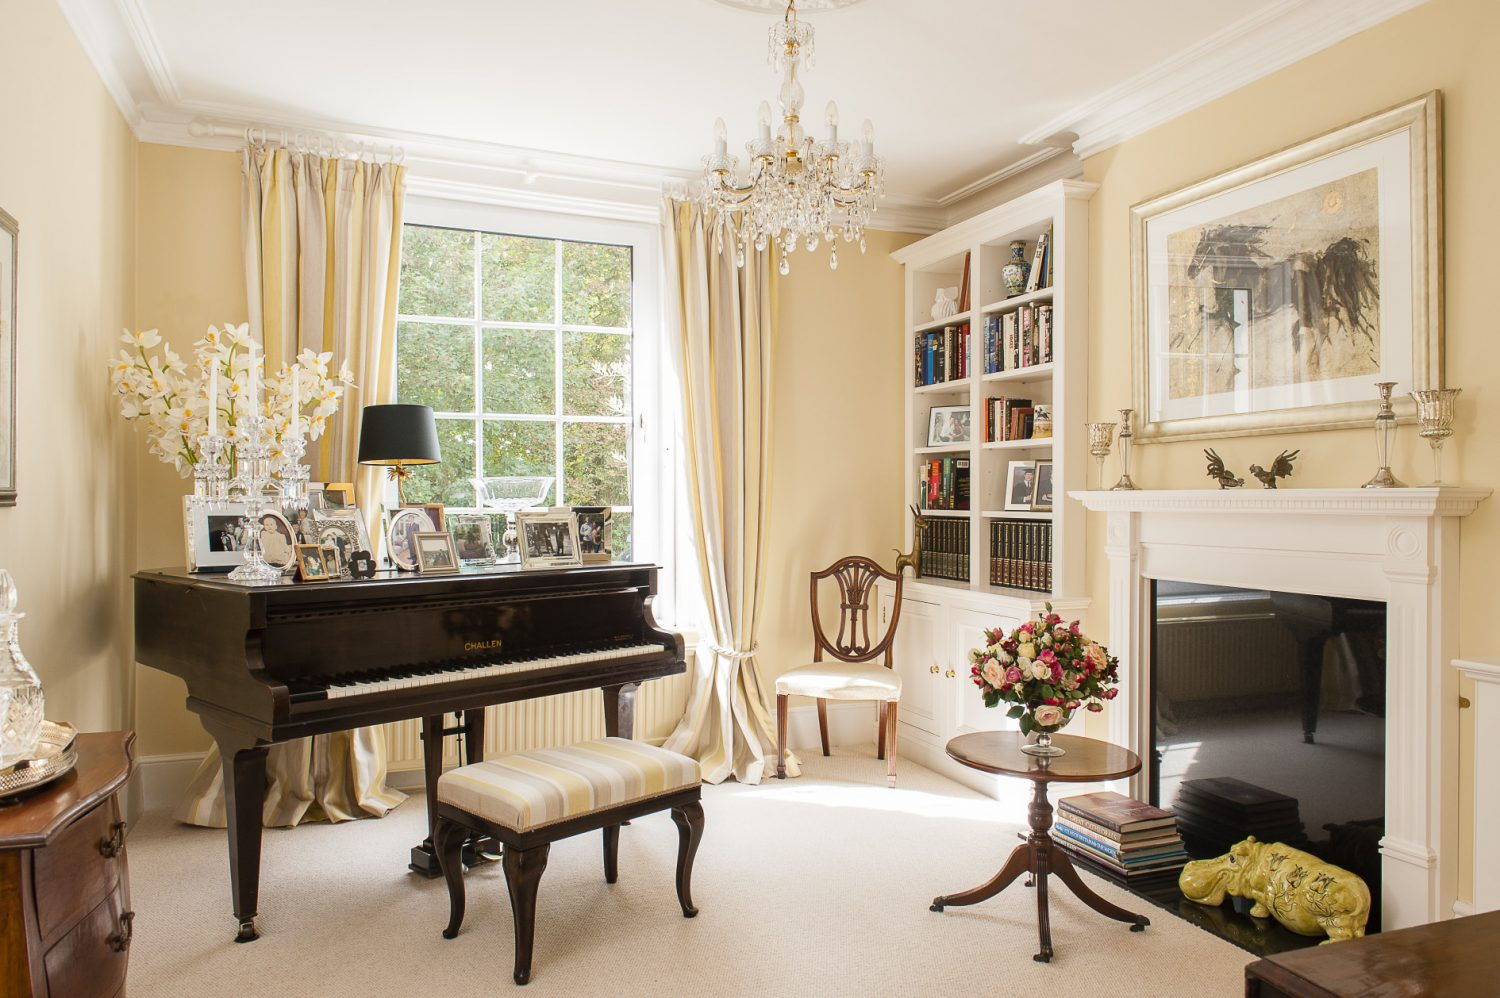 The music room walls are painted in Farrow & Ball's Cream. Pride of place is given to the ebony Challen baby grand piano that belonged to Murielle's mother.